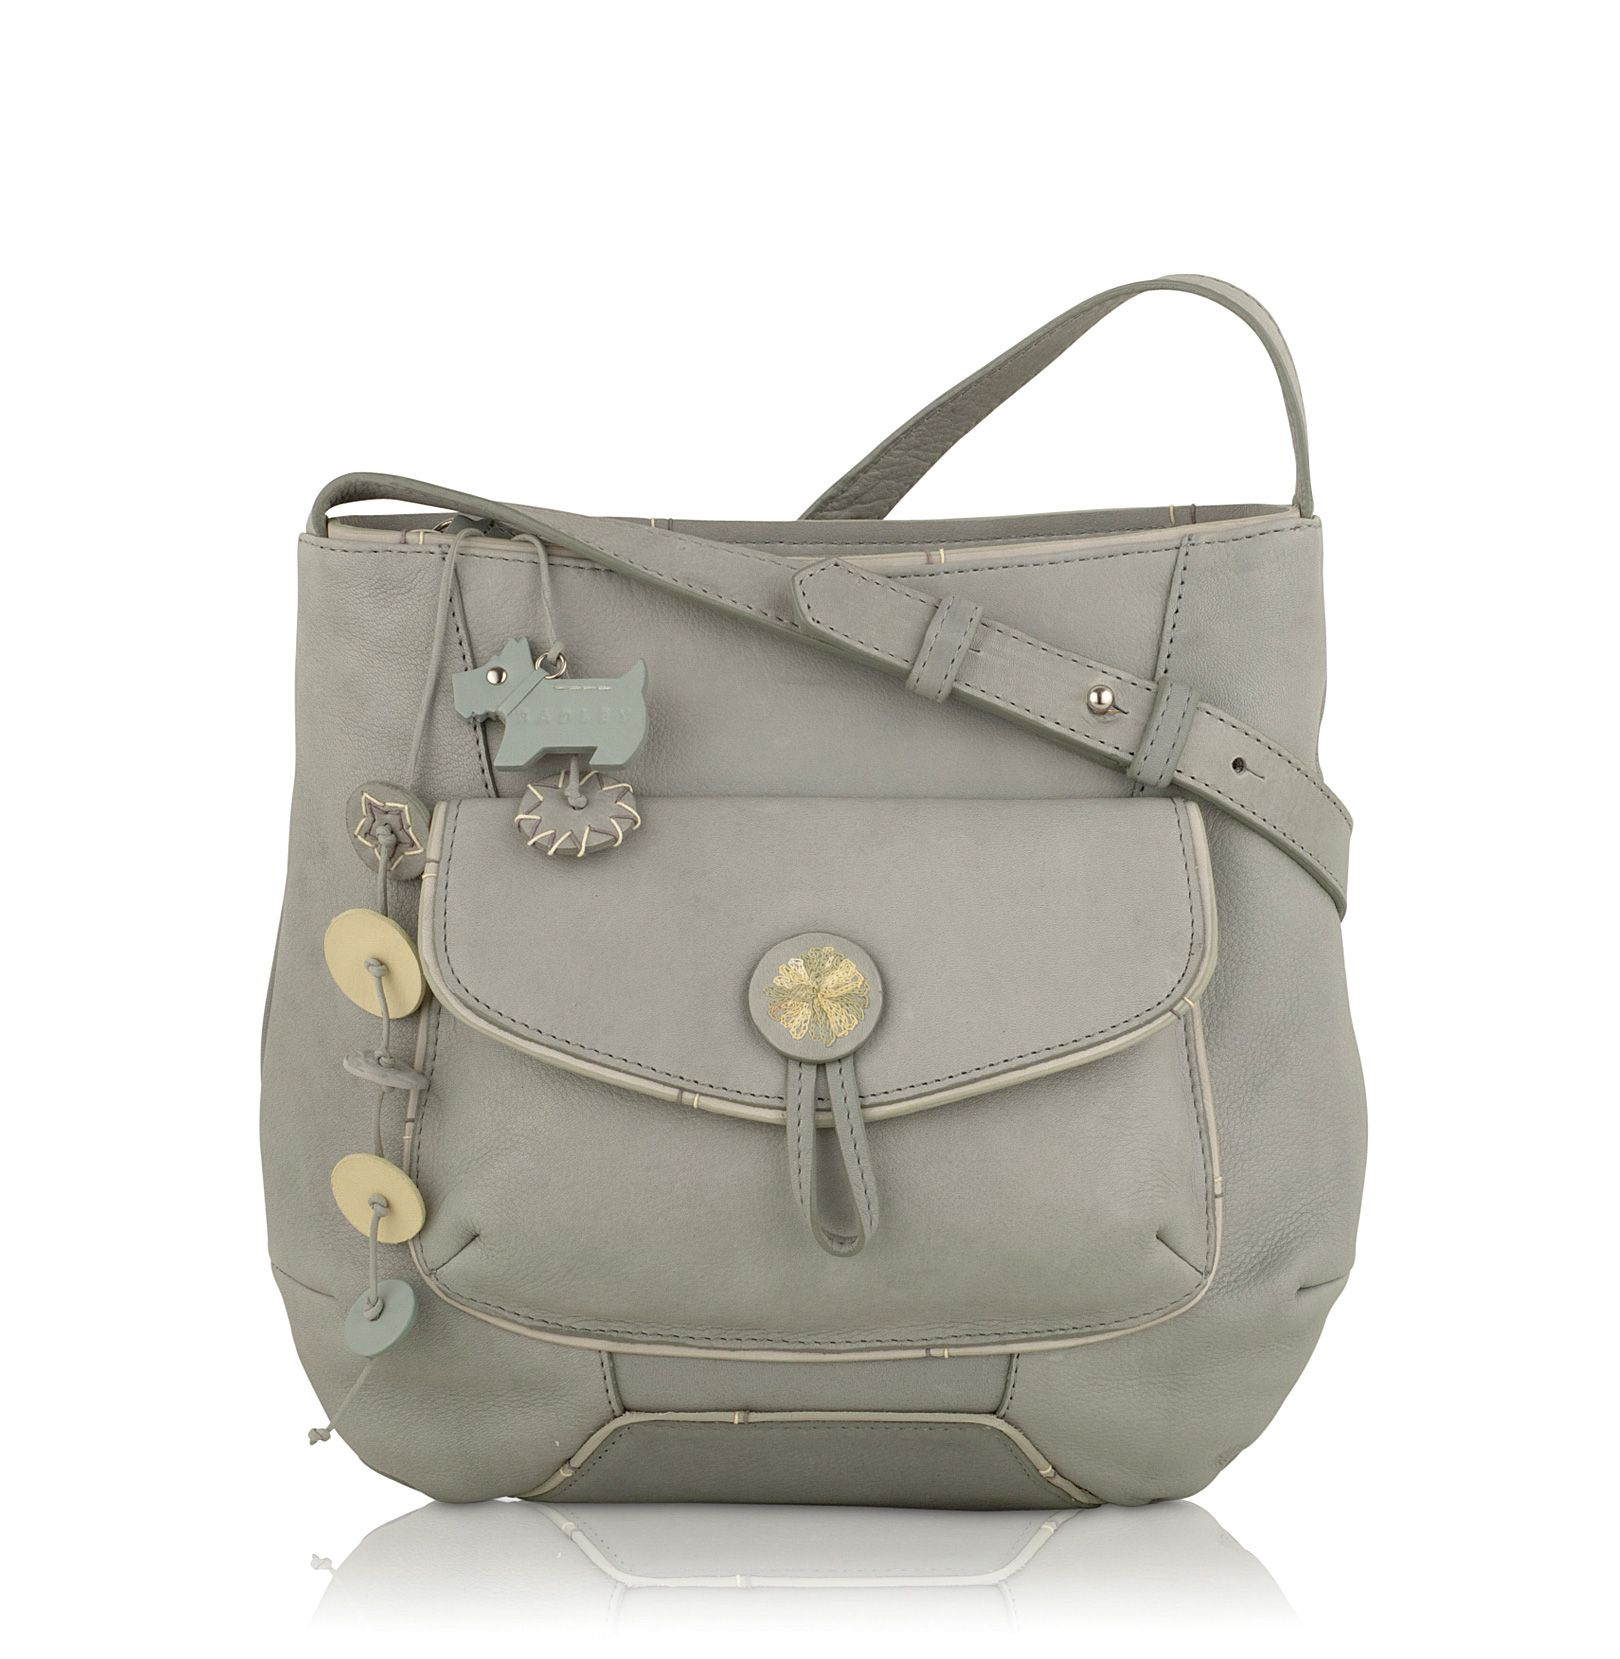 Sherborne leather cross body bag.